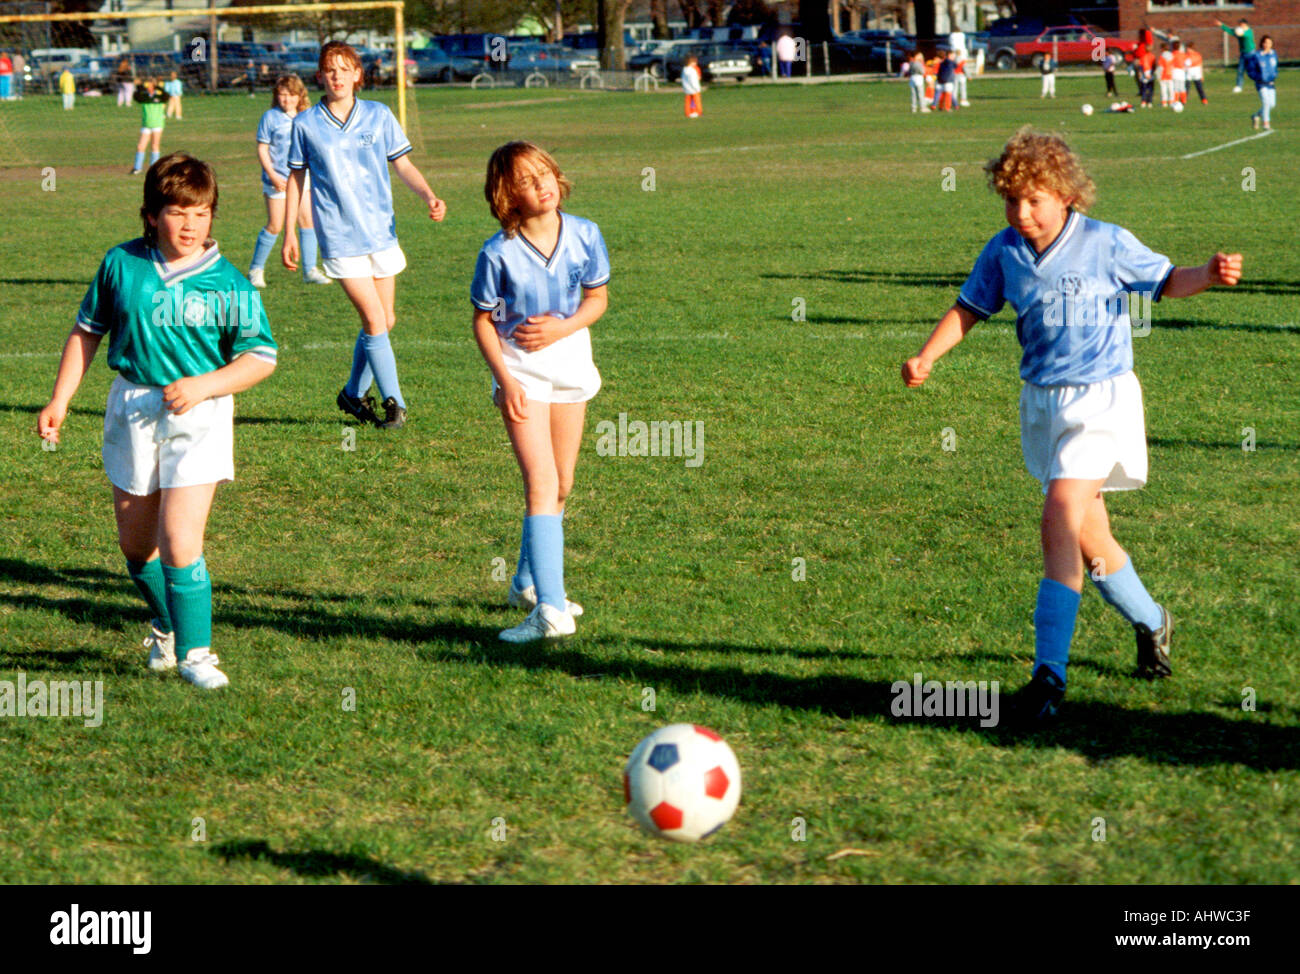 Girls 9 to 11 years old play organized soccer Stock Photo